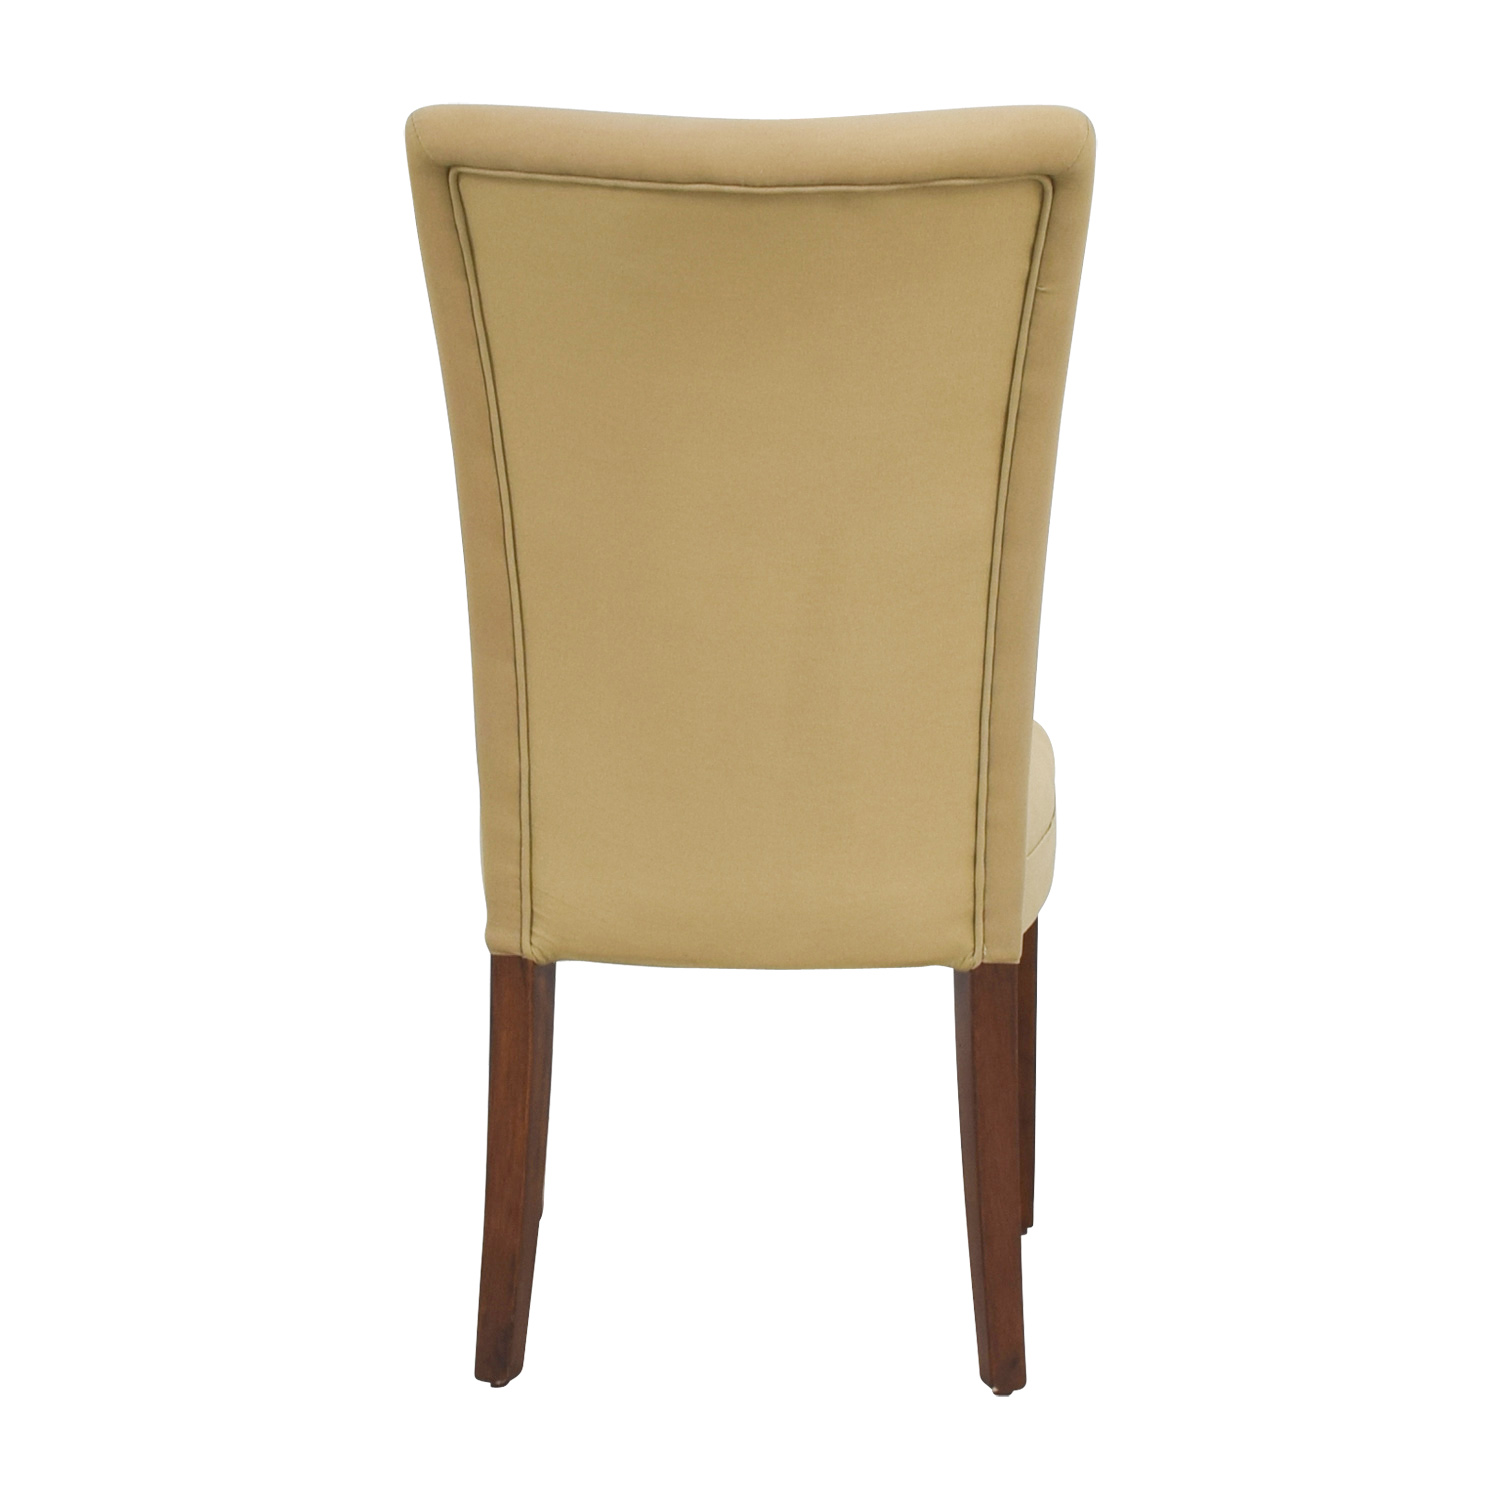 buy Coaster High Back Tan Upholstered Chair Coaster